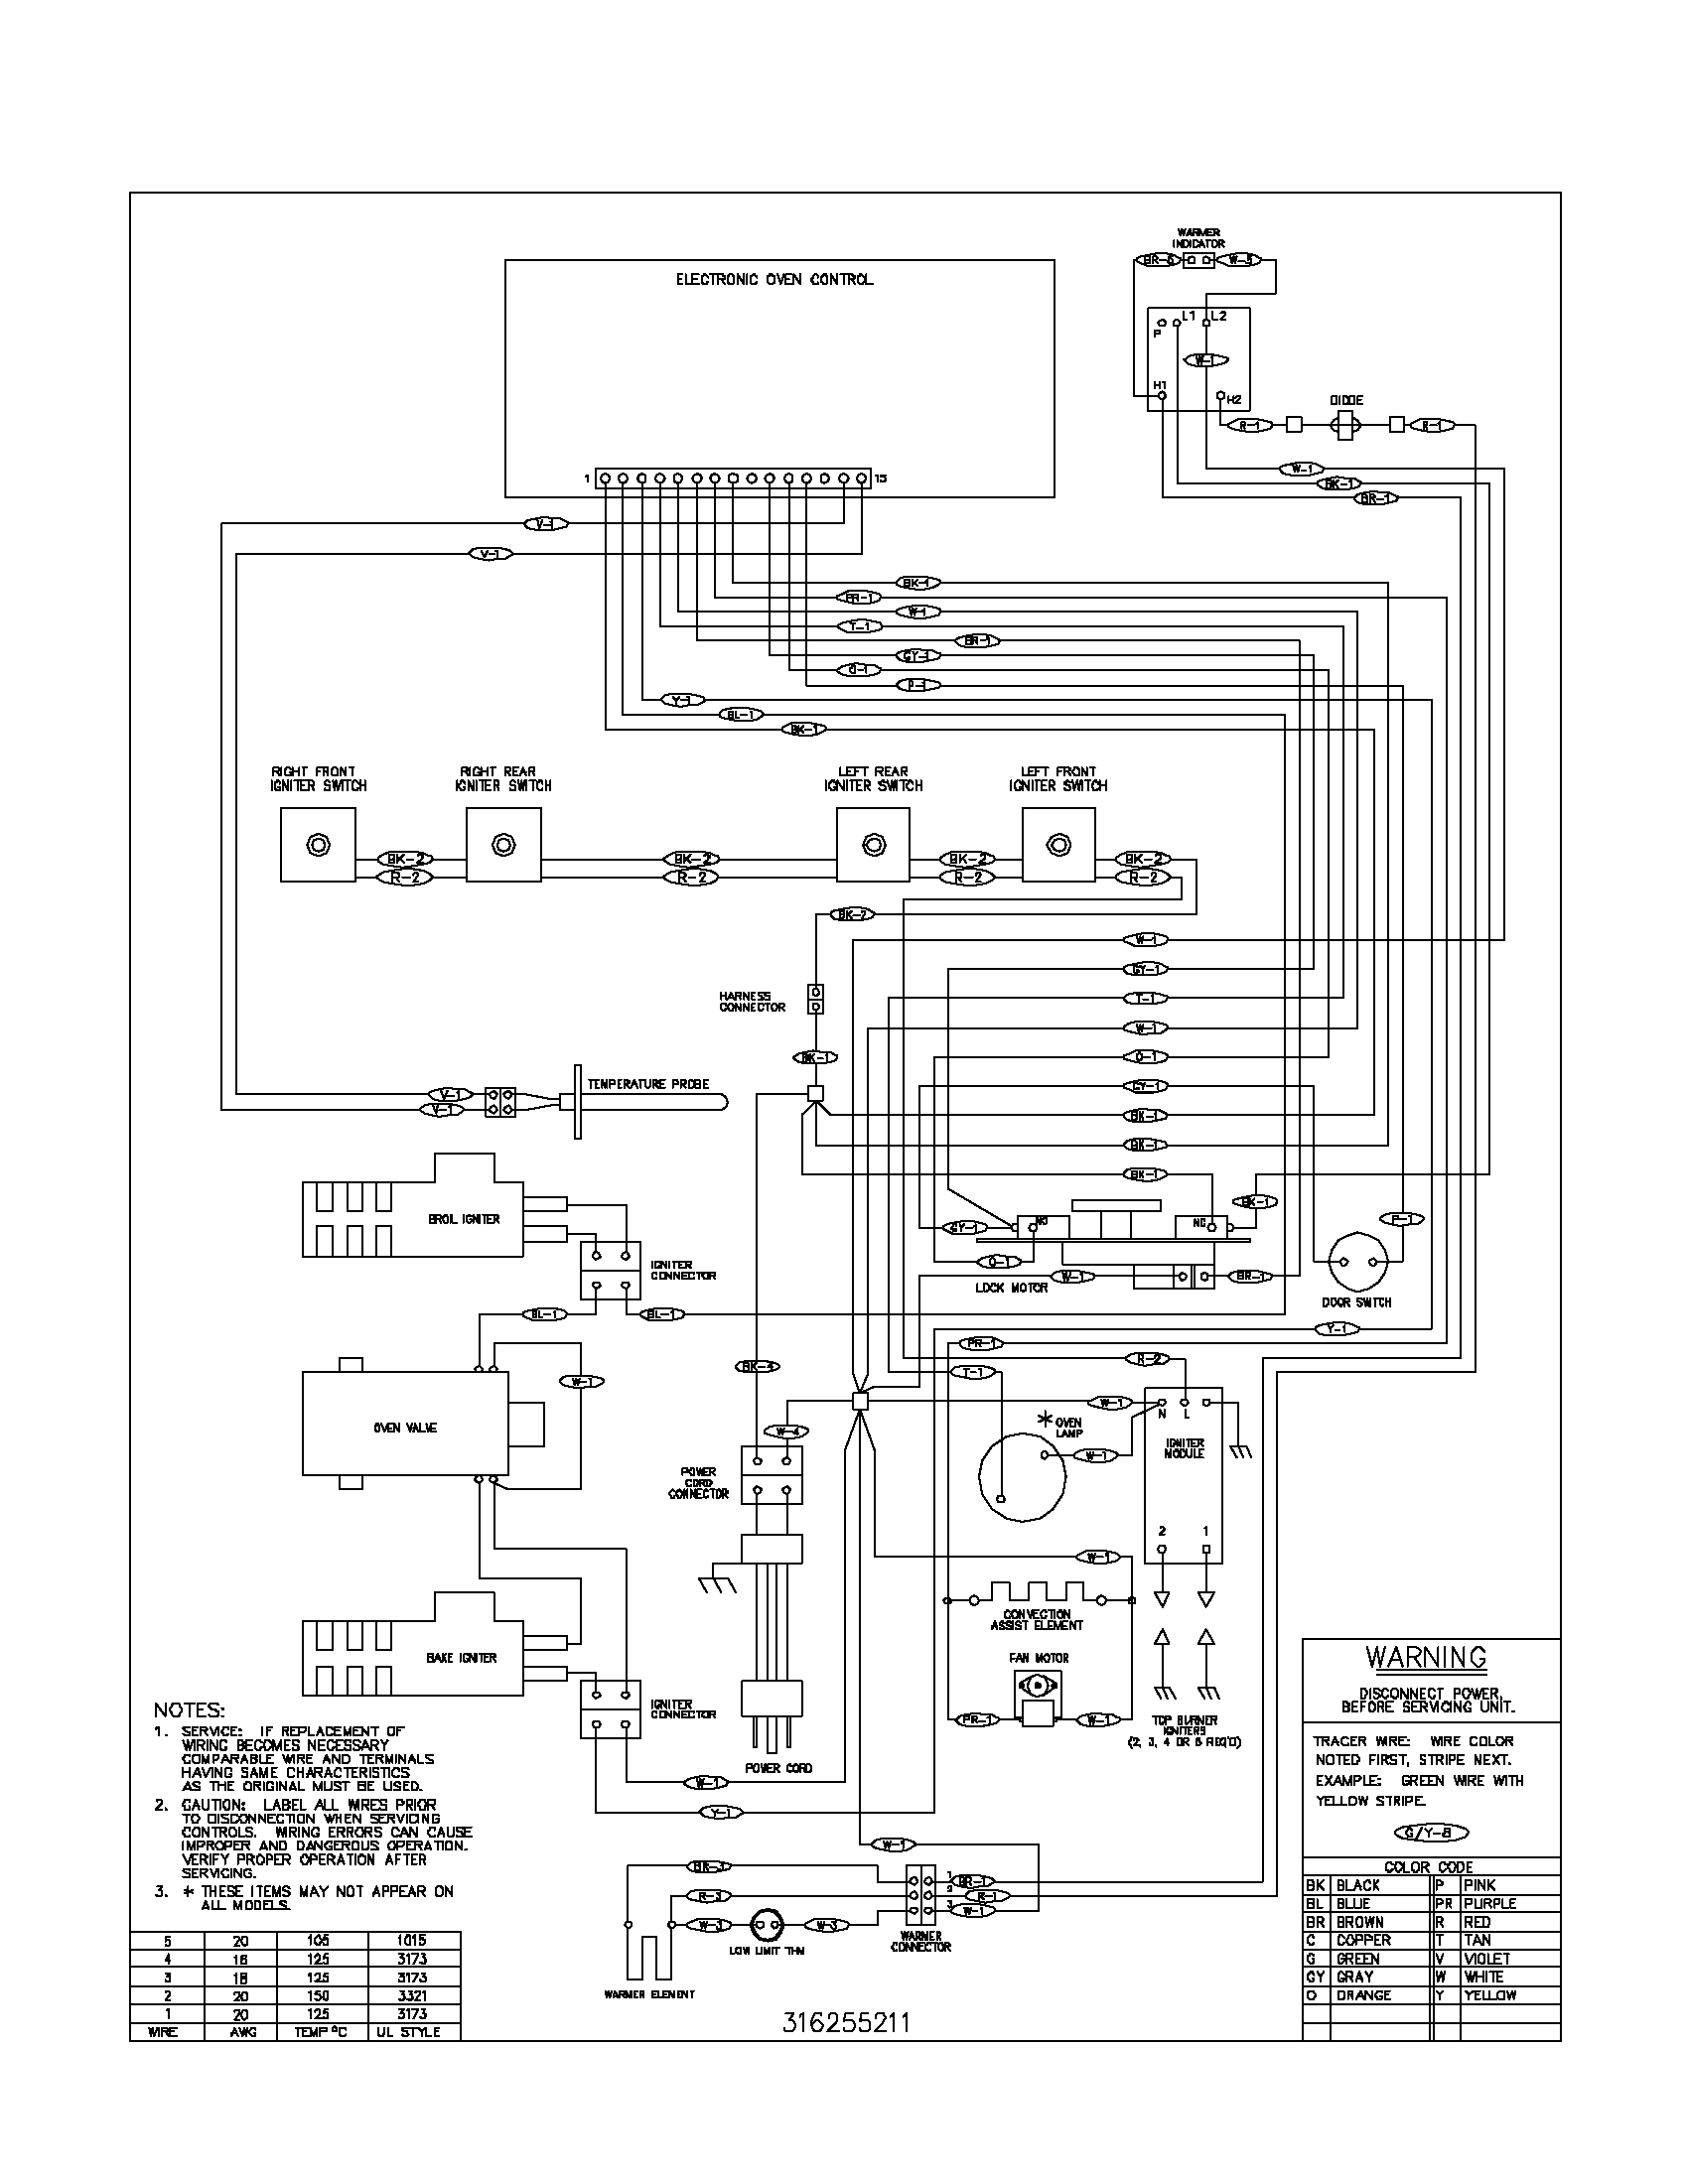 schematic ge oven wiring block diagram Blue M Oven Wiring Diagram ge profile wiring diagram schematic diagram ge range wiring schematic schematic ge oven